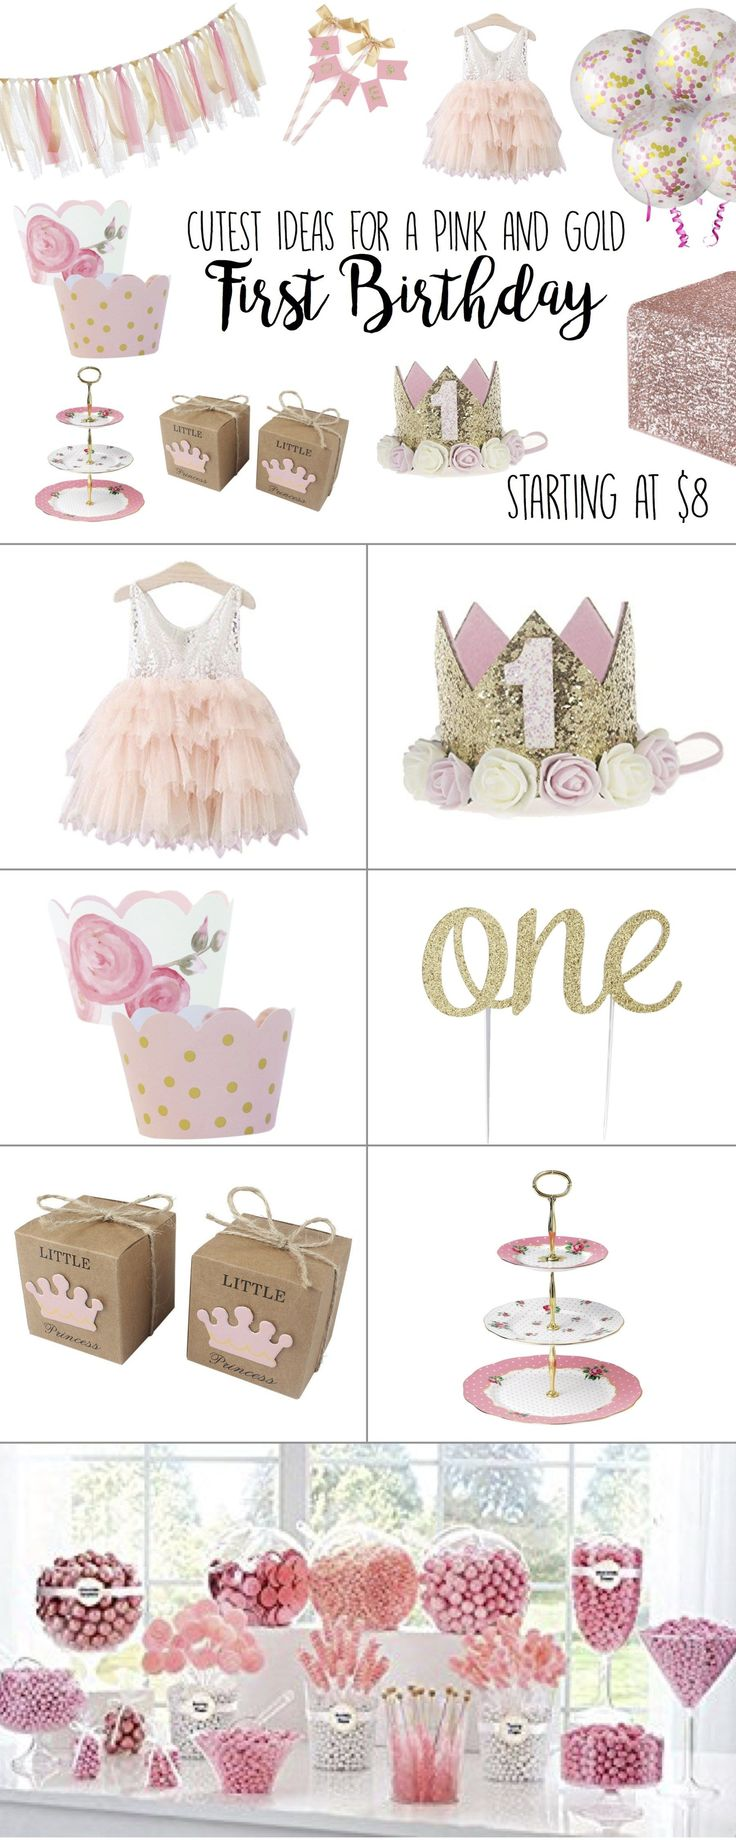 First Birthday Girl, Party Ideas, Themes, Pink and Gold, Outfit, Decorations, Cake, DIY, Princess, Invitations, Cake Smash, Favors, Favor boxes, Vintage, shabby chic #firstbirthday #pinkandgold #birthdaygirl #birthdayparty #firstbirthday #diypartydecorationsvintage